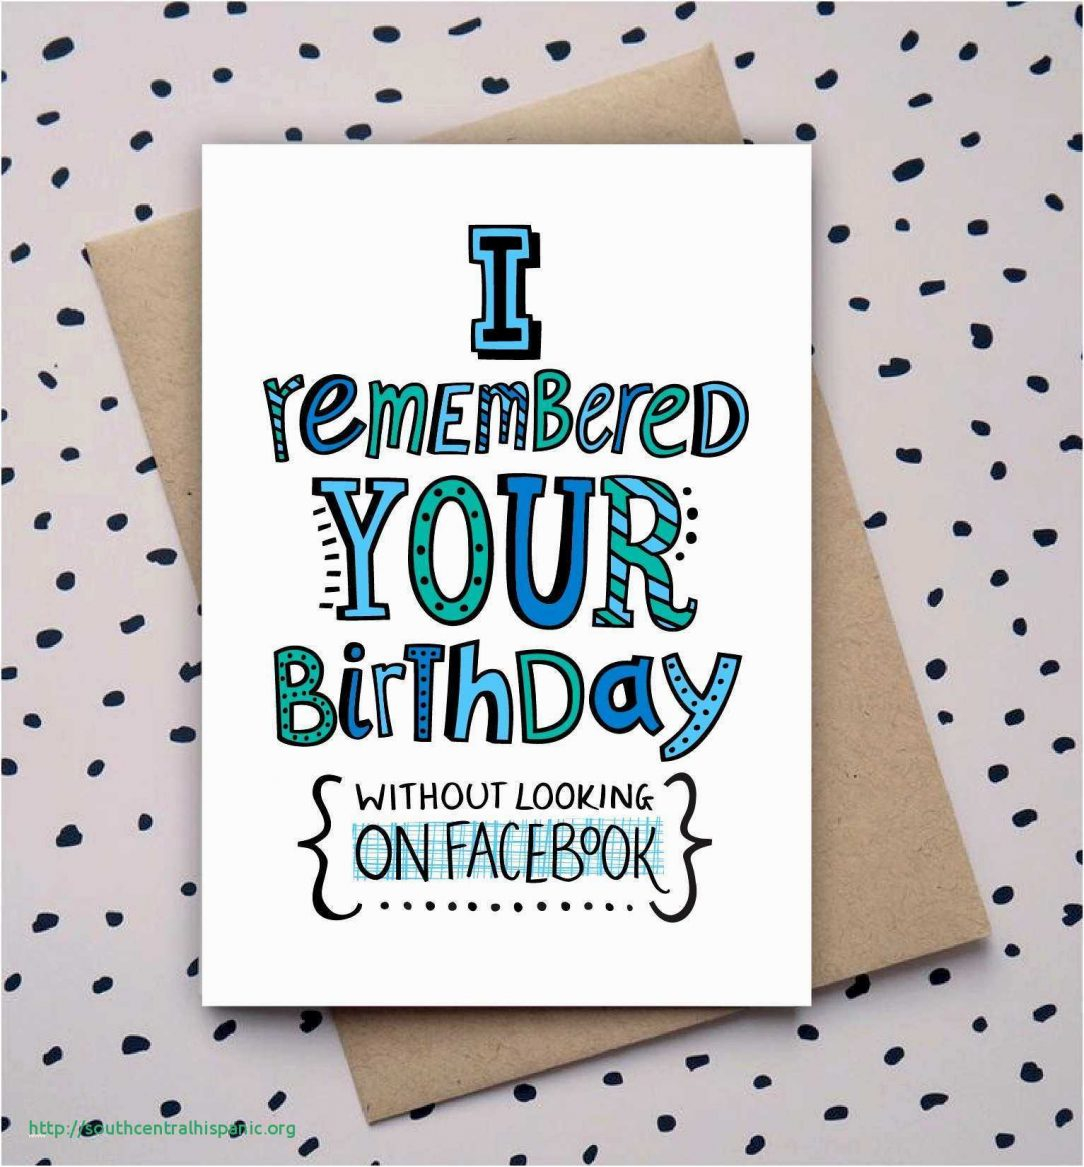 Ideas For Birthday Cards For Dads Father Birthday Card Ideas Dad Message Wording Text From Daughter